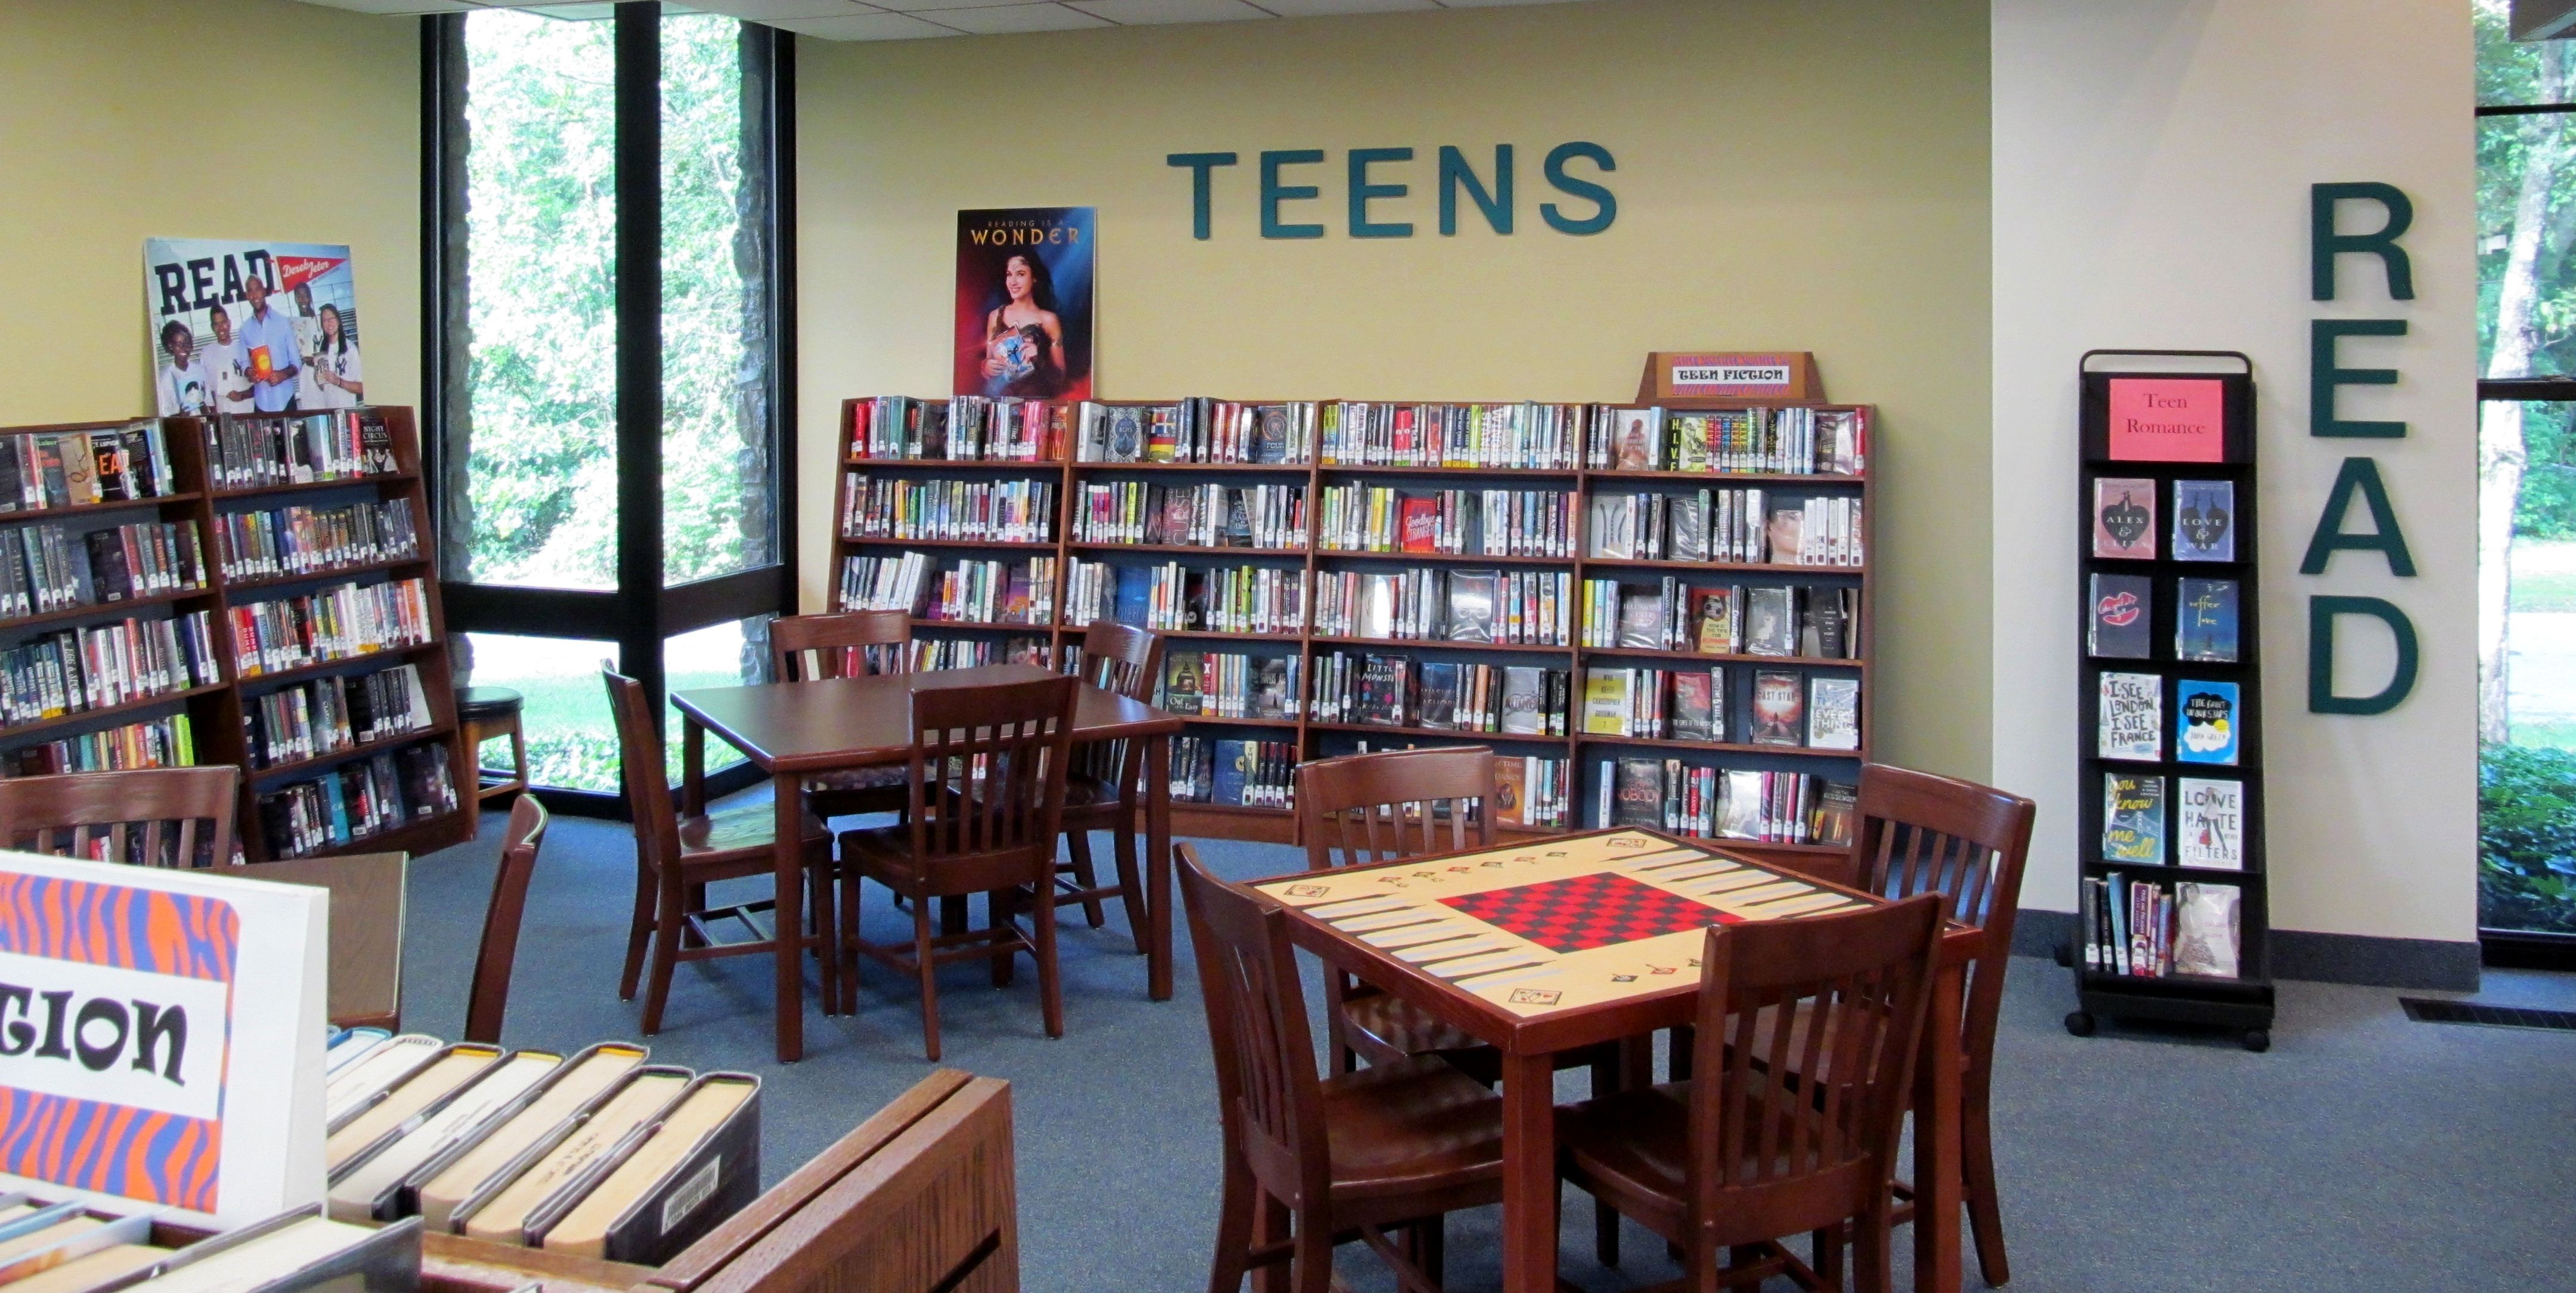 Teen Area of the Library